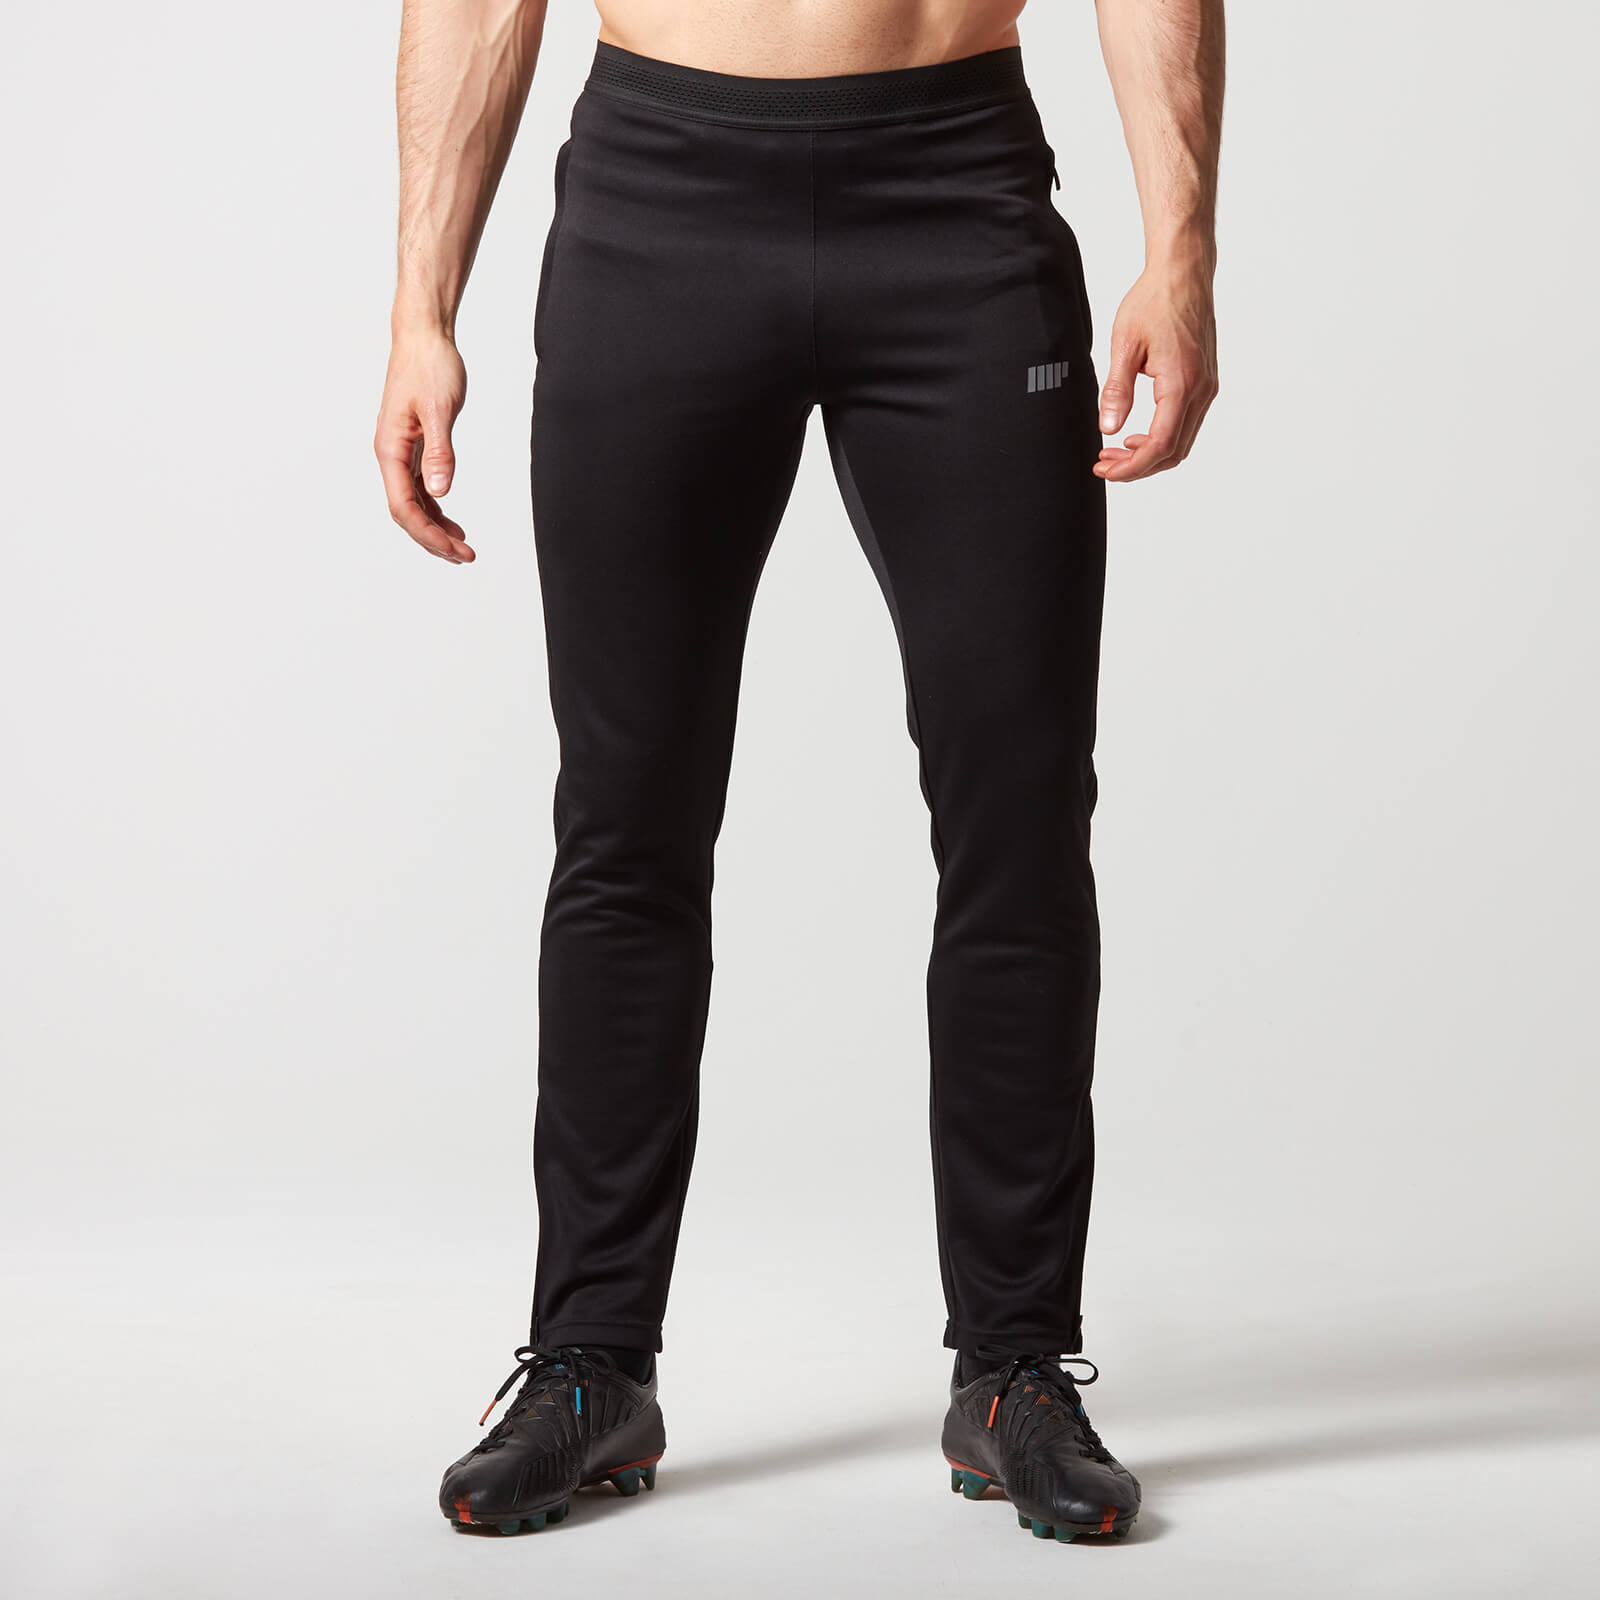 Strike Football Bottoms - Black - L